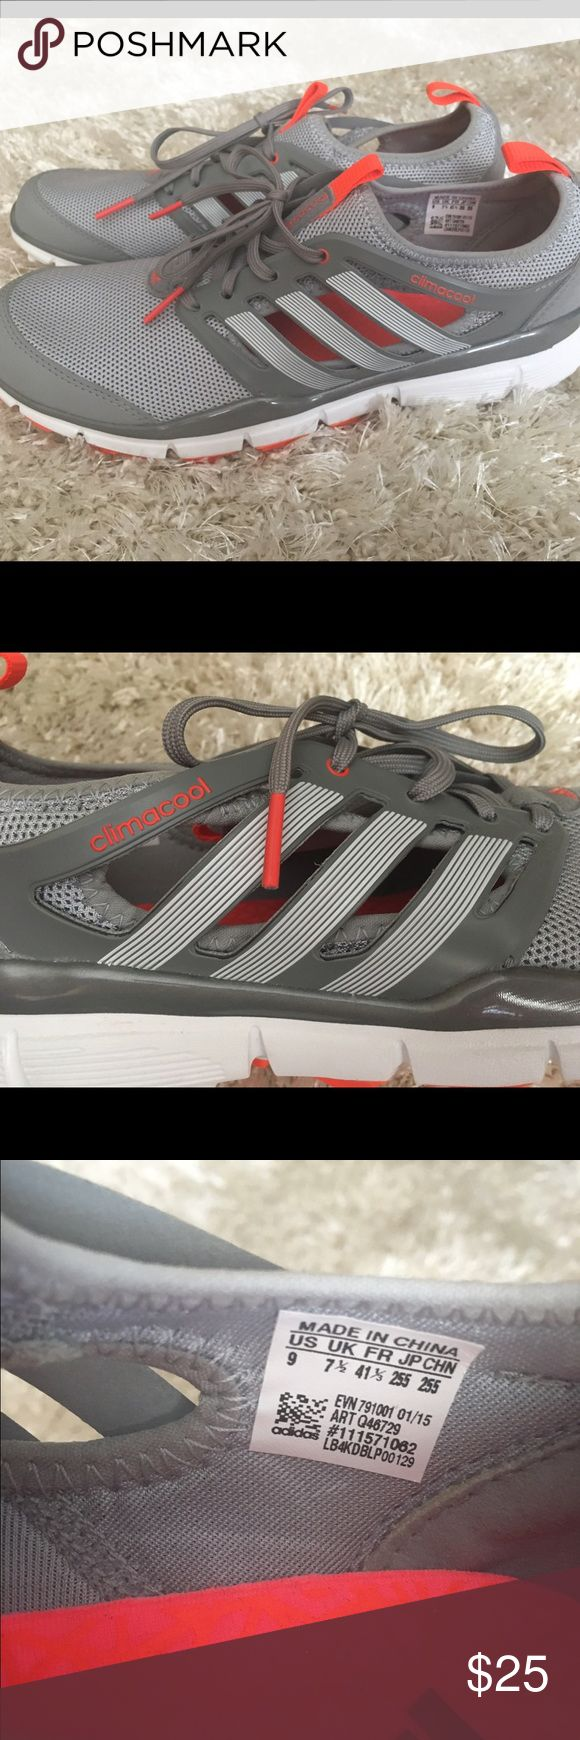 ADIDAS CLIMACOOL GOLF SHOES Only worn once!!! Super comfy, breathable ladies golf shoes. Perfect condition! Size 9, I normally wear an 8.5 to 9 and these fit me perfectly but I don't golf so they are just taking up space. Adidas Shoes Athletic Shoes